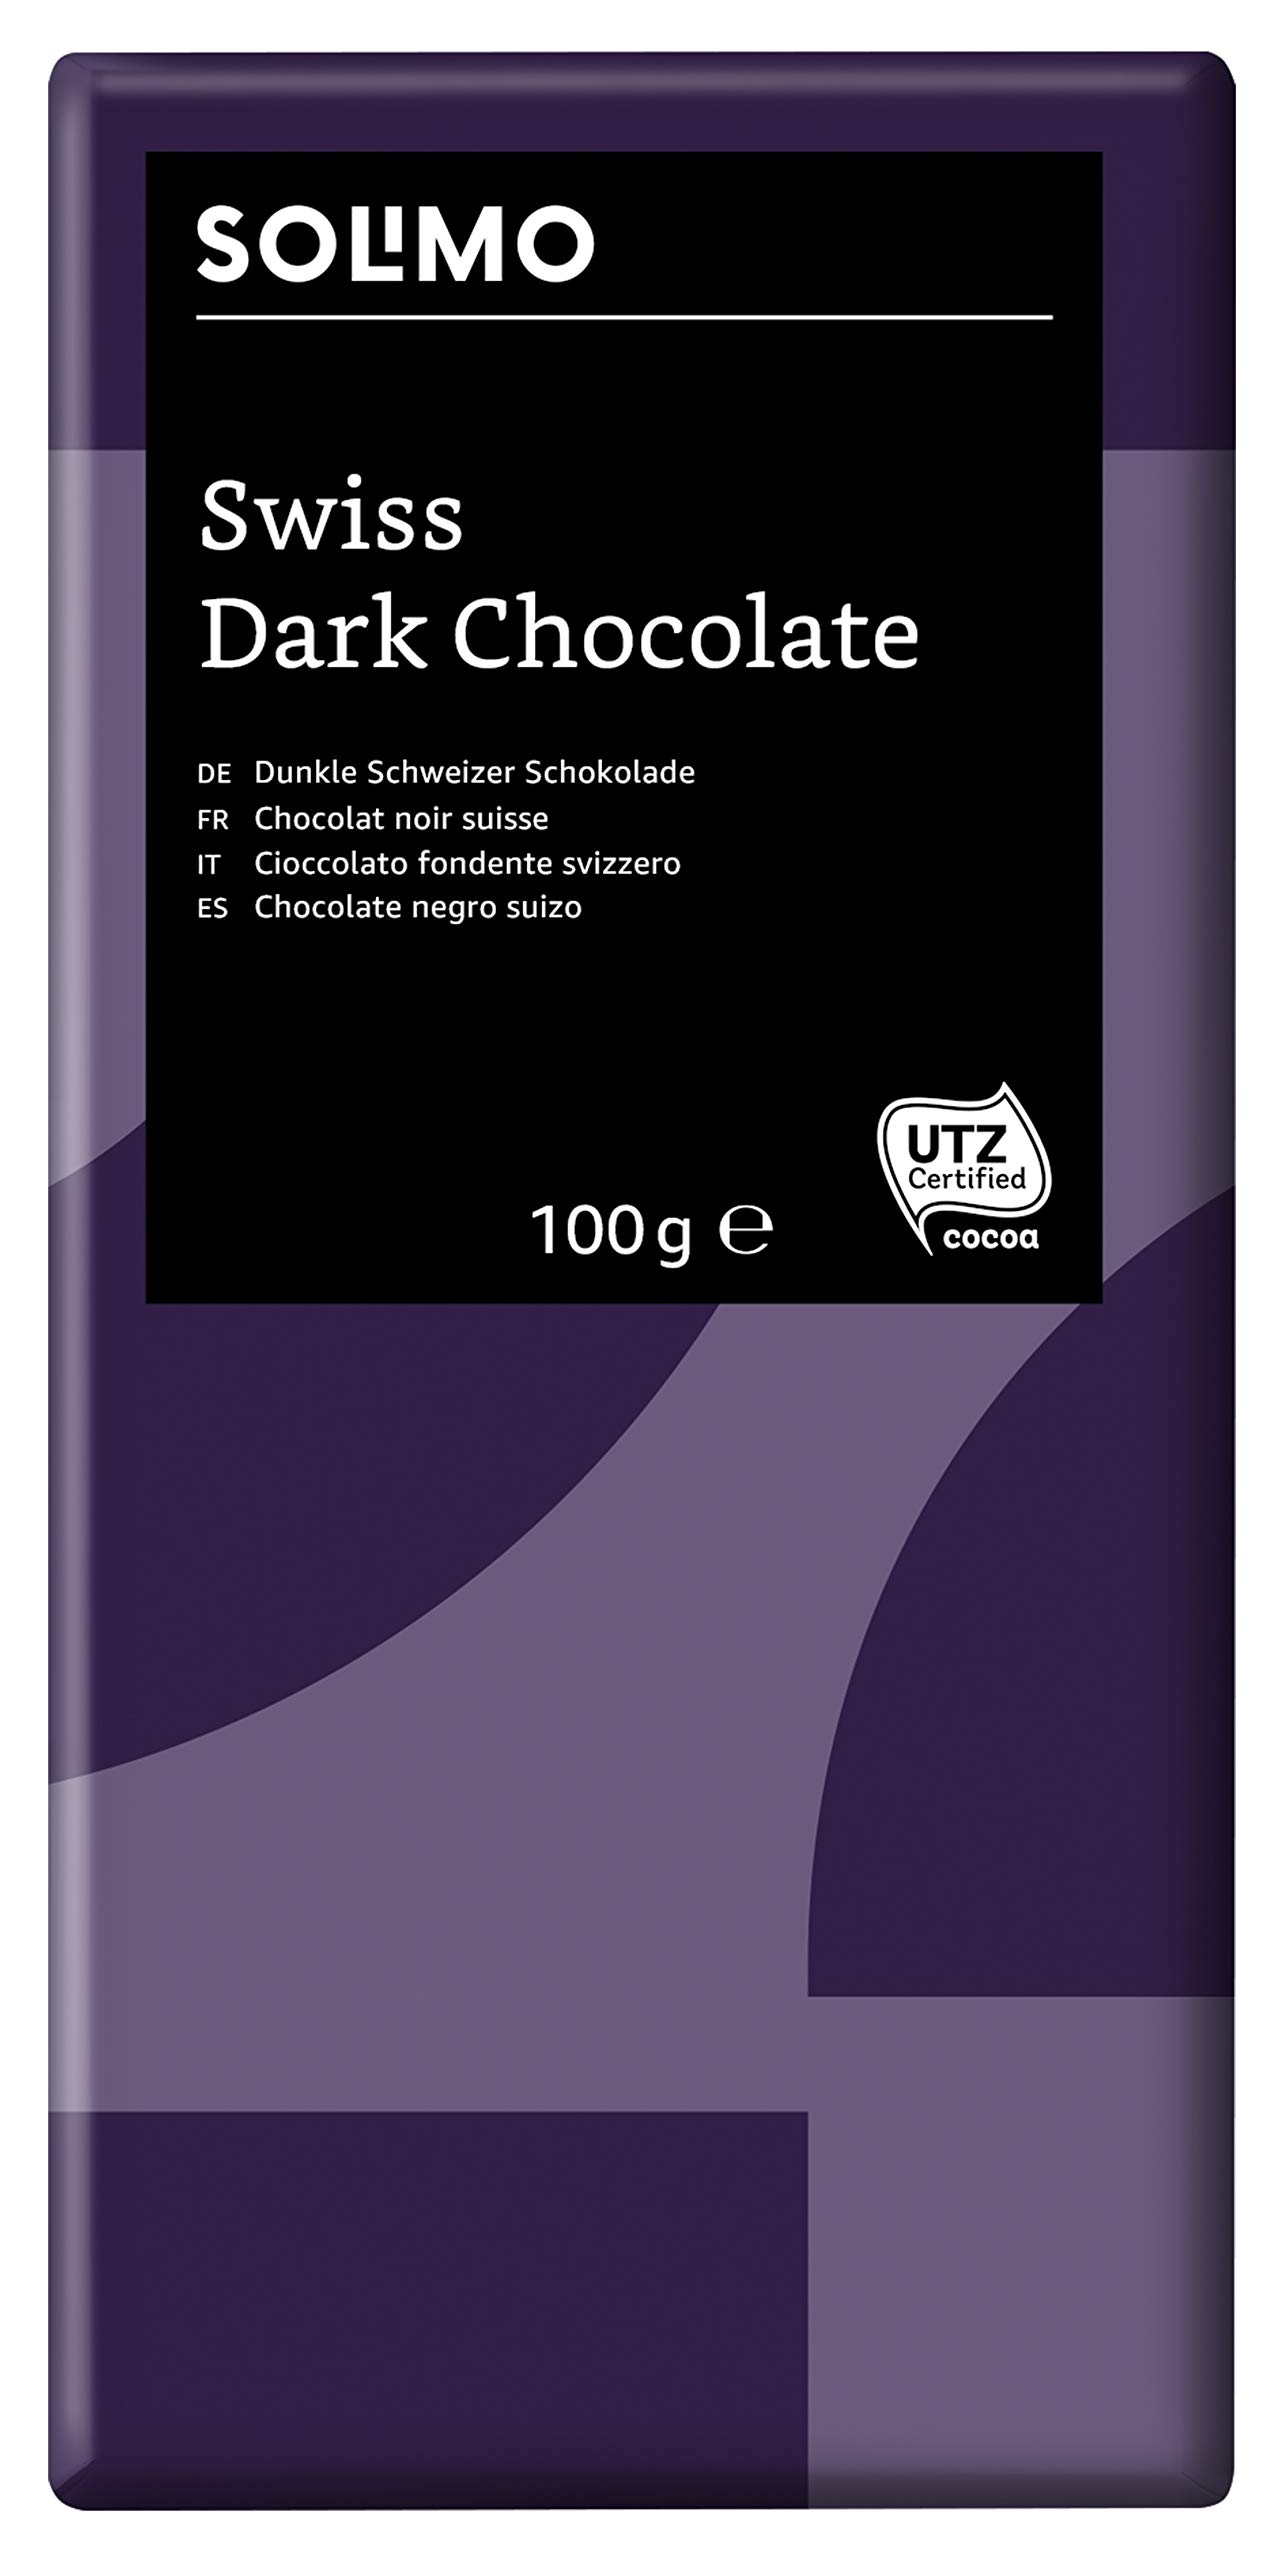 Amazon Brand - Solimo - Swiss Dark Chocolate 45% 1.2 kg (12 bars x 100g each)